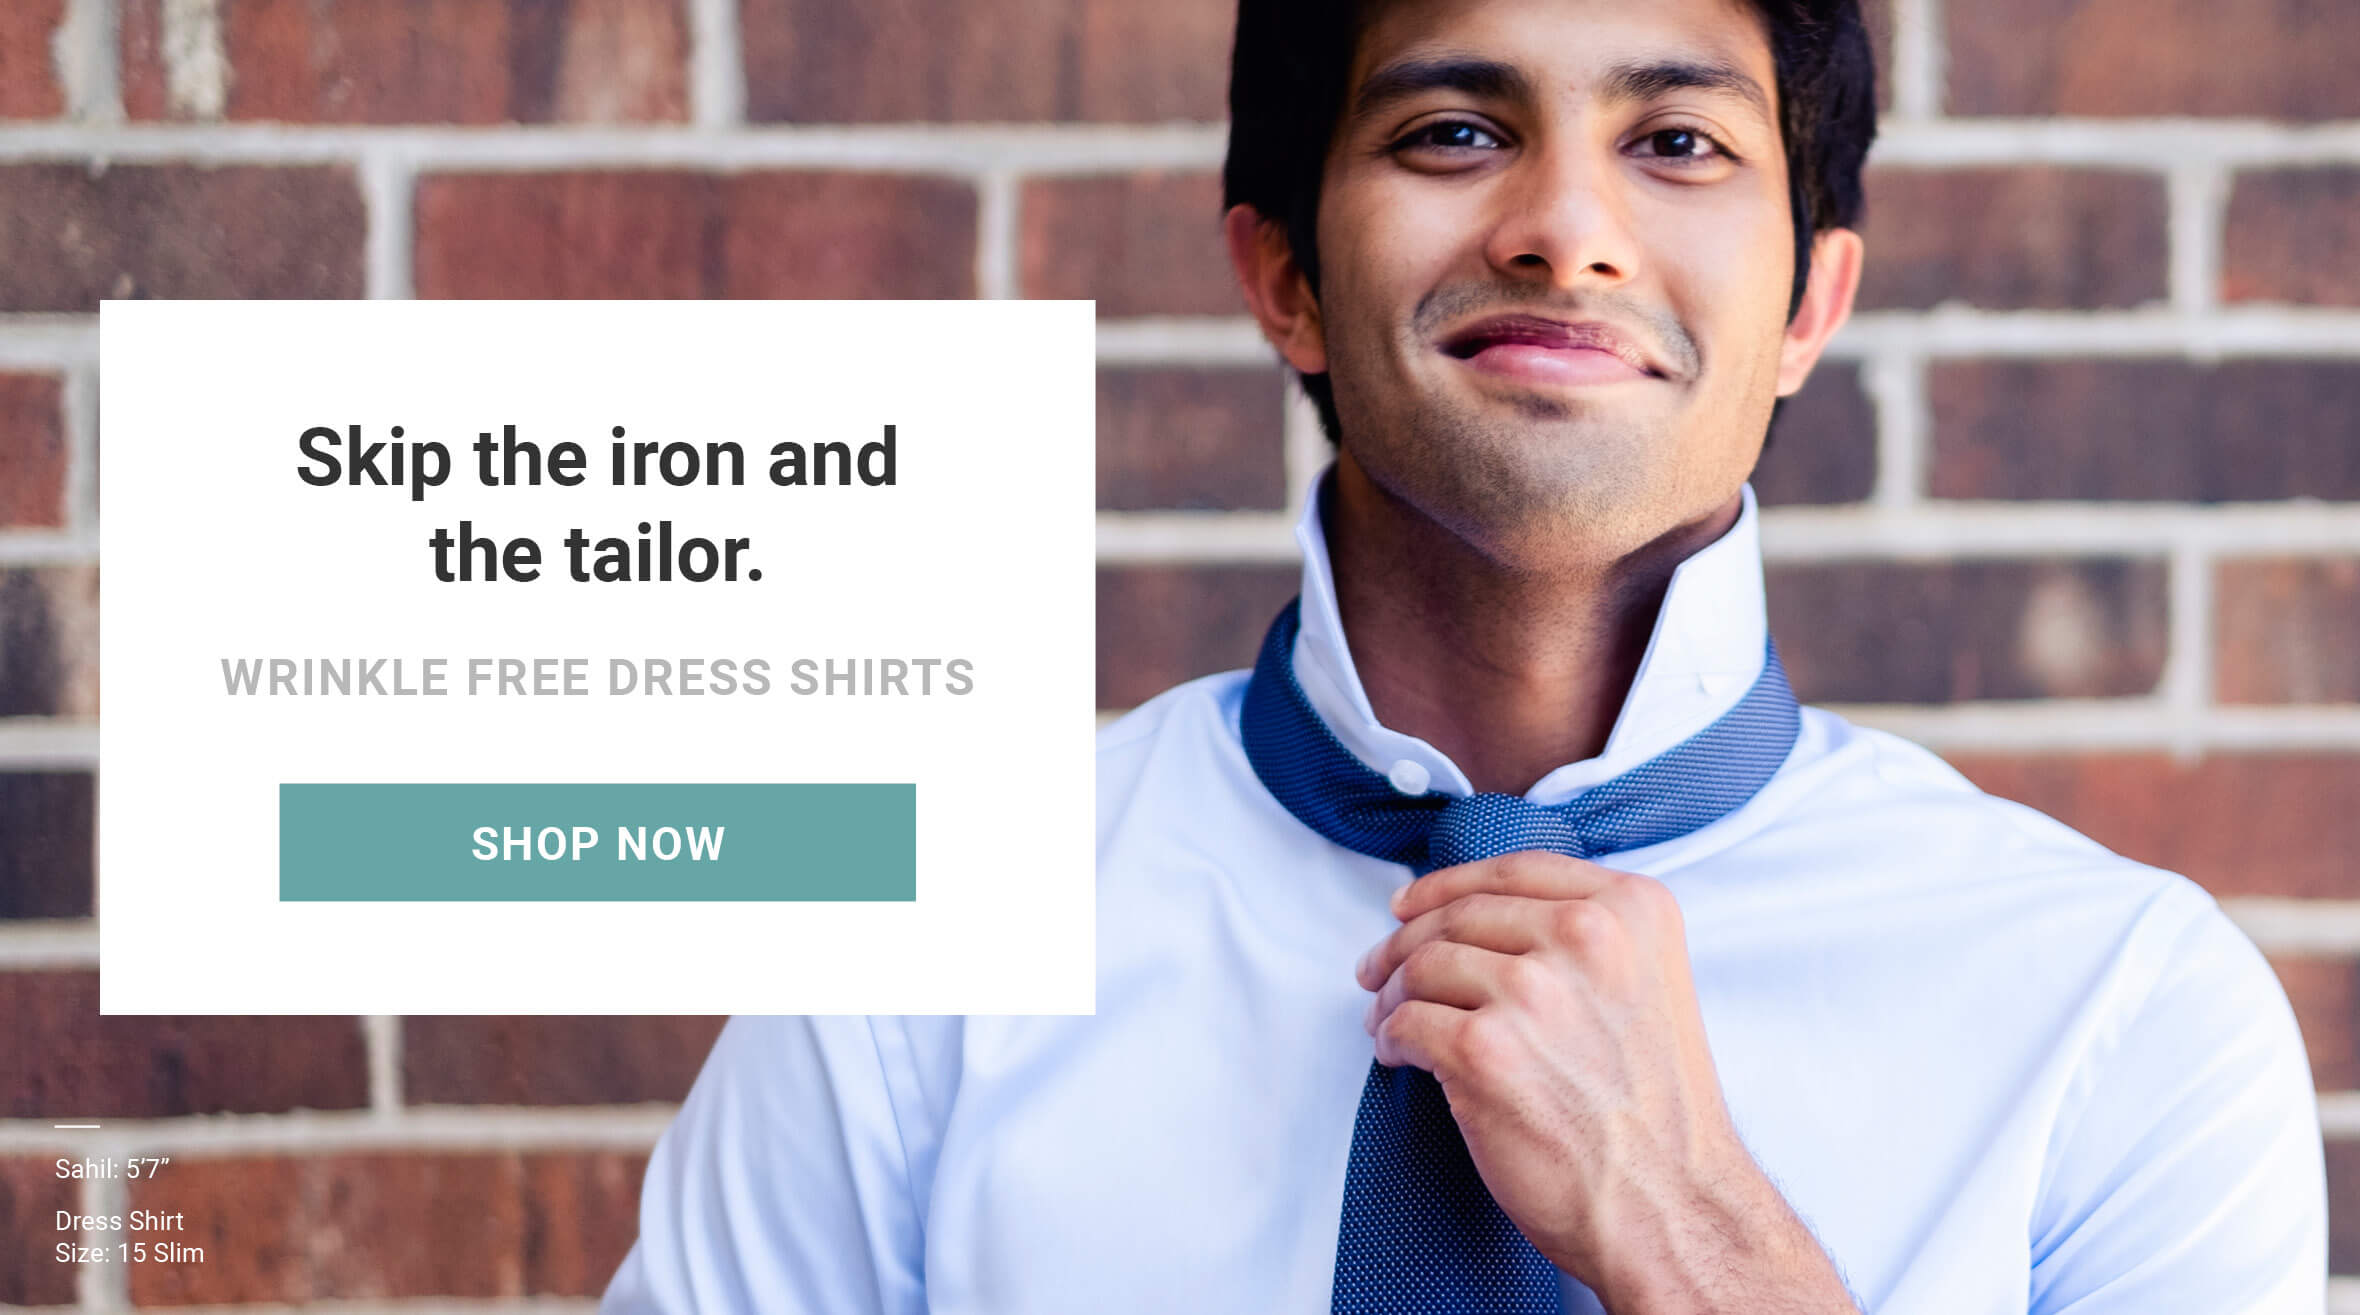 Skip the iron and the tailor. Wrinkle free dress shirts. Made for men of great heights, shorter guy clothes. Dress shirts now available in 14 sizes. Shop now. As seen on Shark Tank!